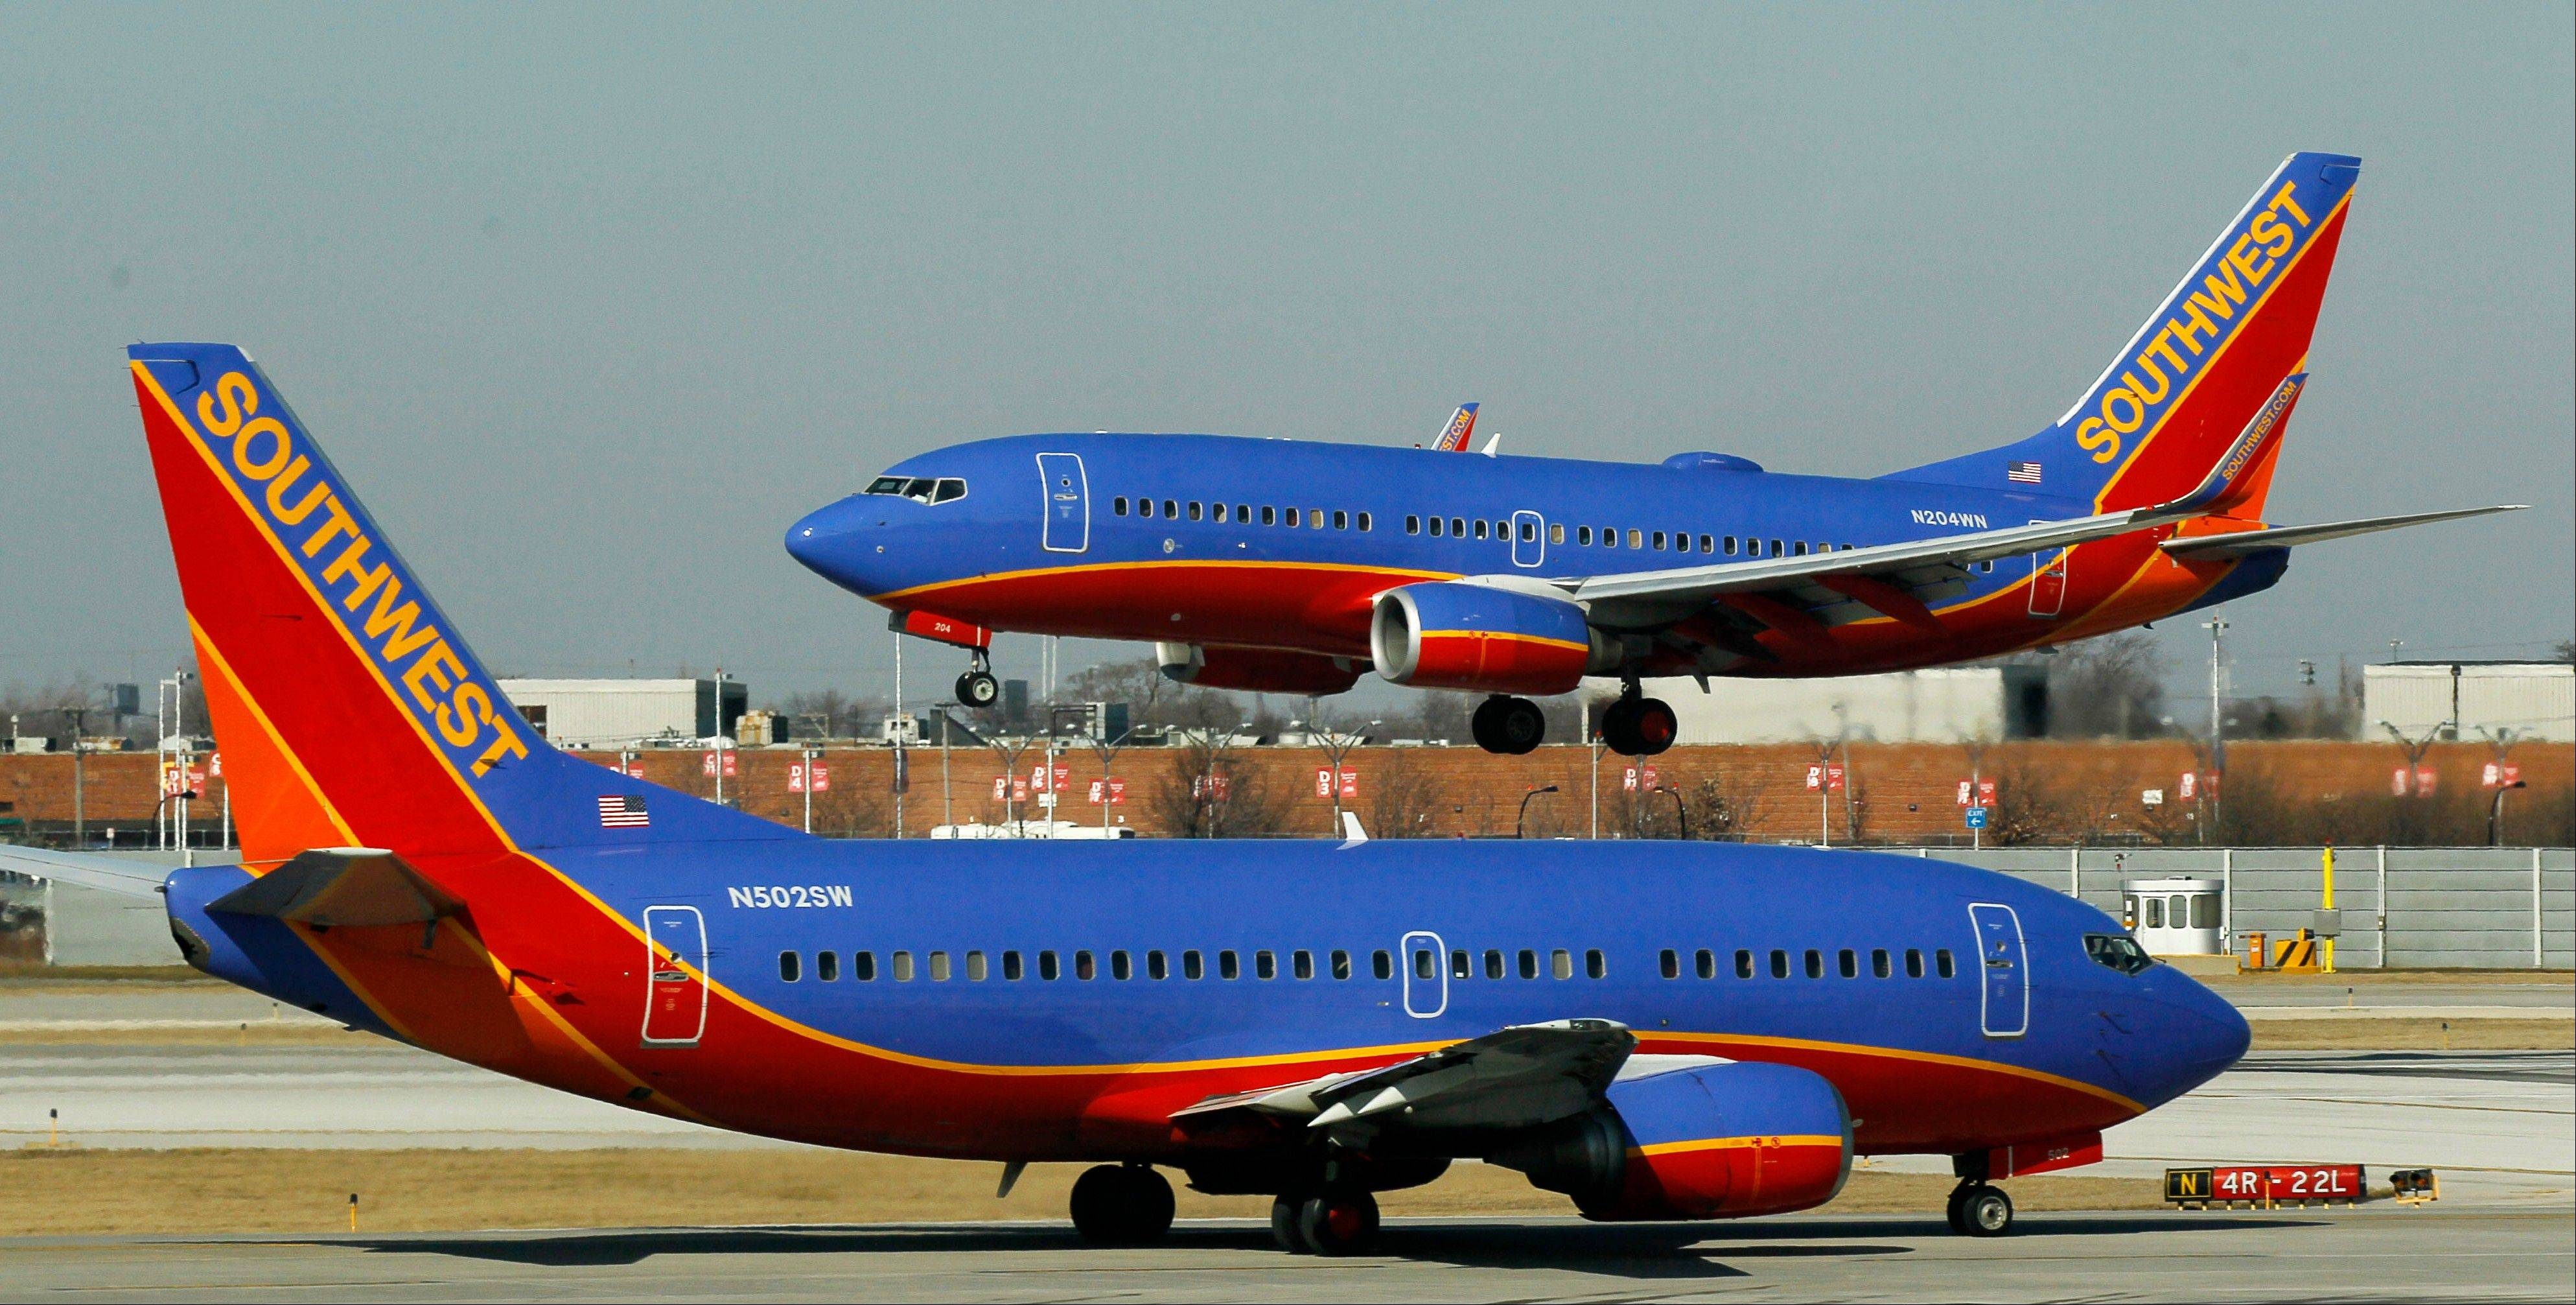 Southwest Airlines is one reason Midway Airport had a record number of passengers traveling through it in 2012.